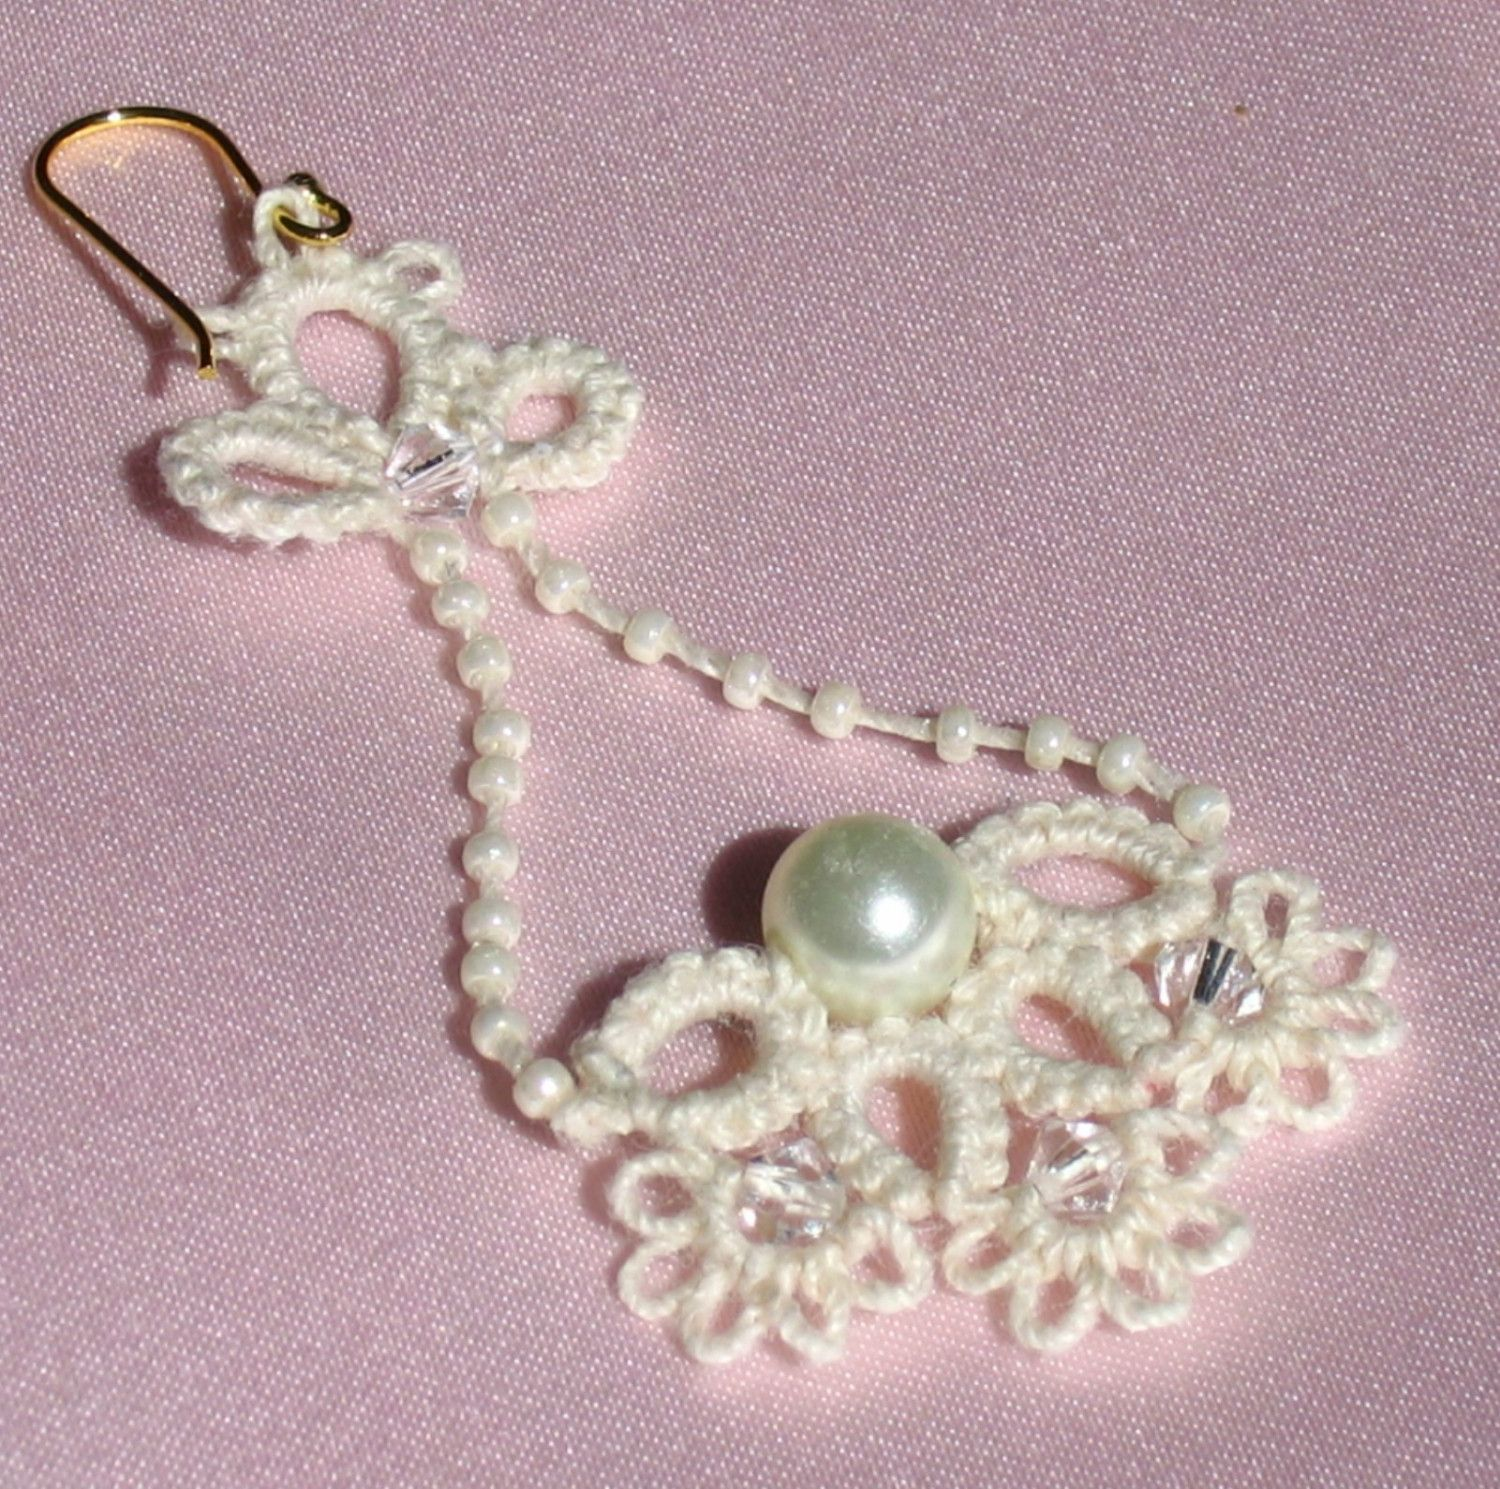 Lacy bridal earrings - Victorian Ivory Lace, Pearls and Crystals. $30.00, via Etsy.